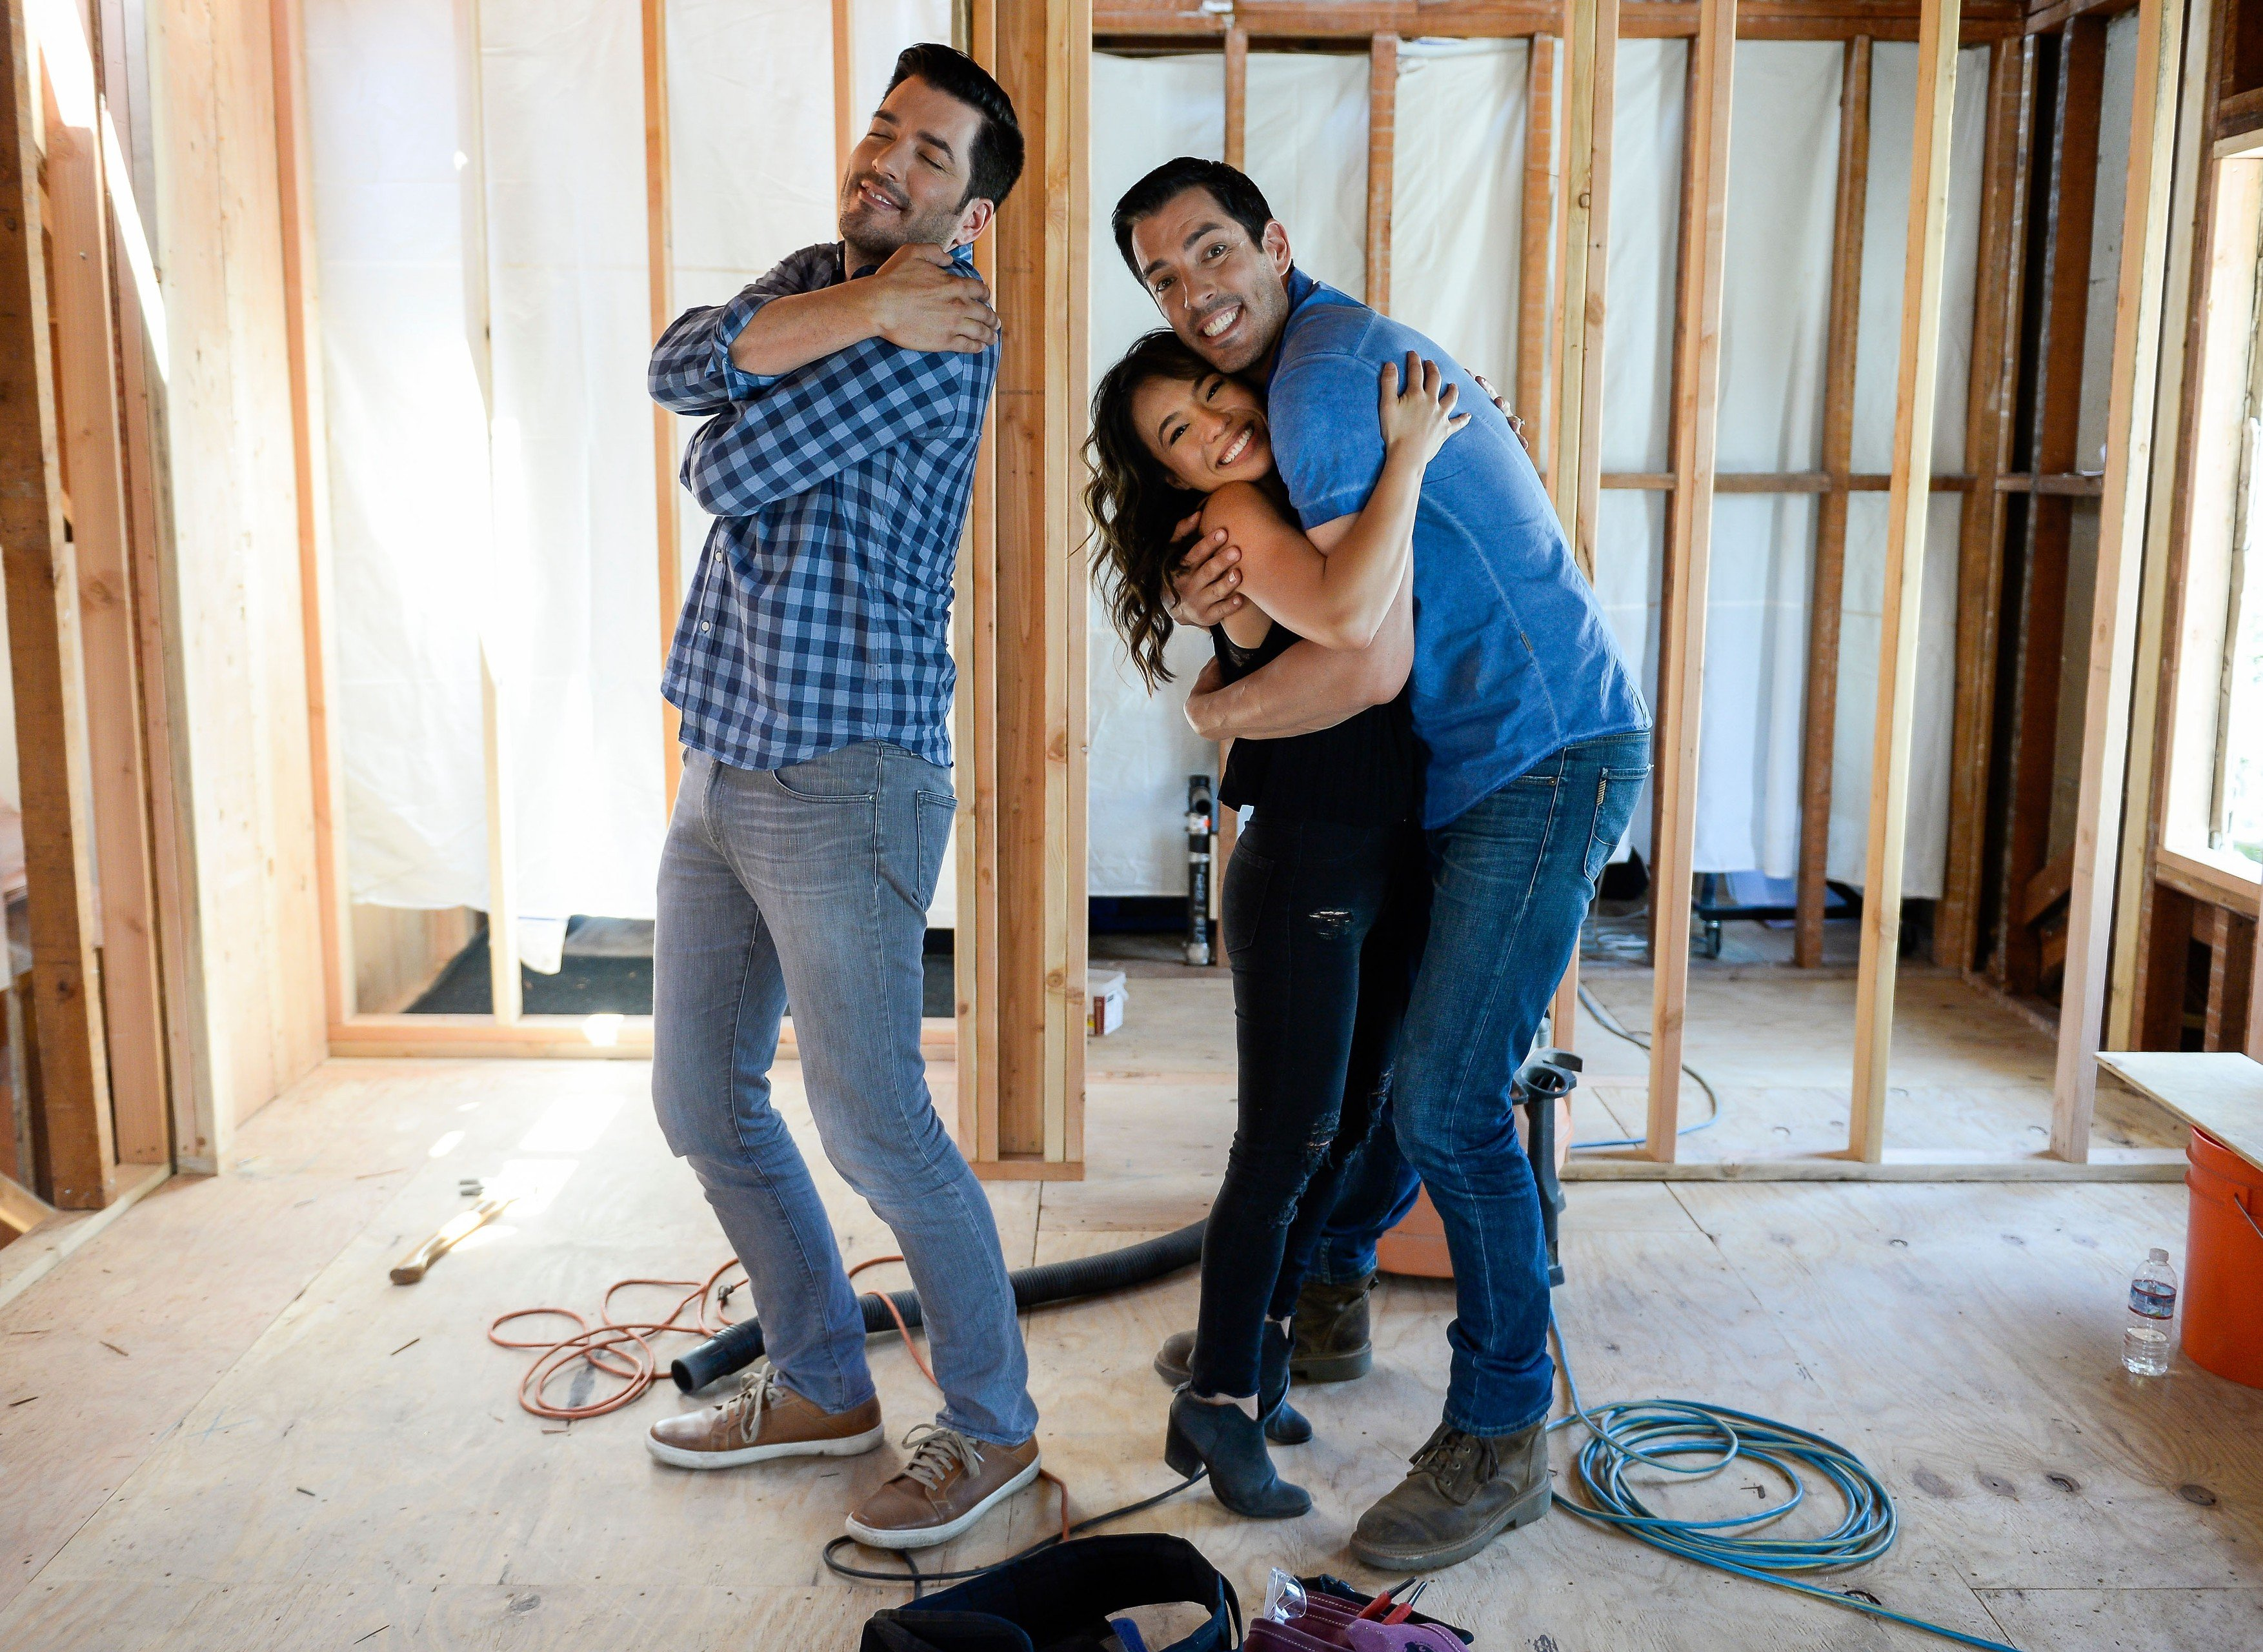 July 19, 2017; Los Angeles, CA, USA; Jonathan Scott (left) with his brother Drew Scott and Drew's fiancee Linda Phan (center) during the filming of \